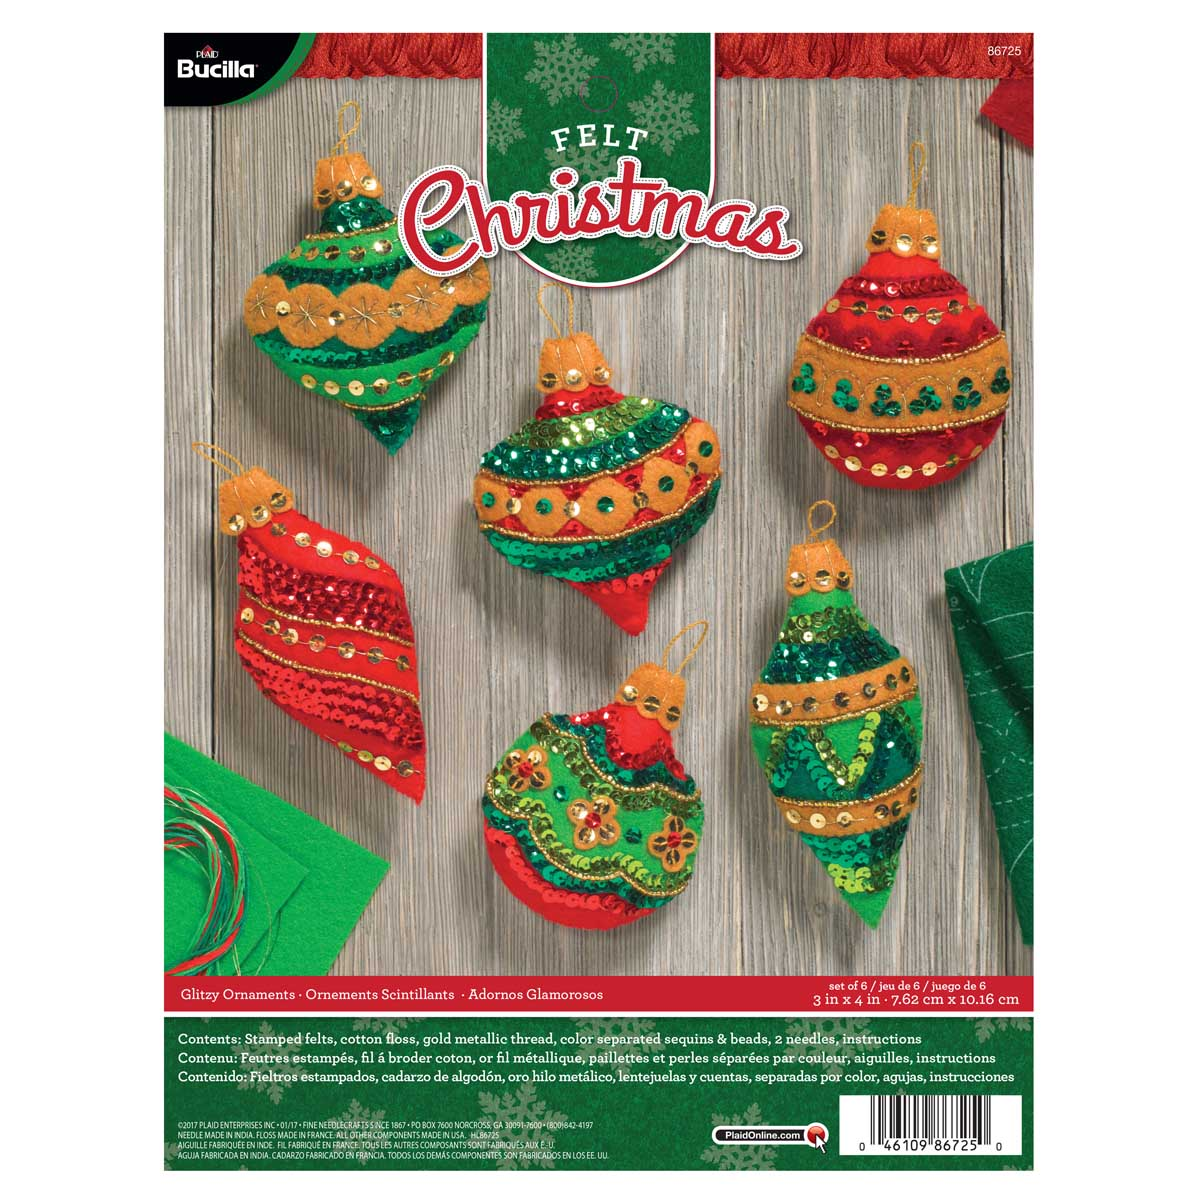 Bucilla ® Seasonal - Felt - Ornament Kits - Glitzy